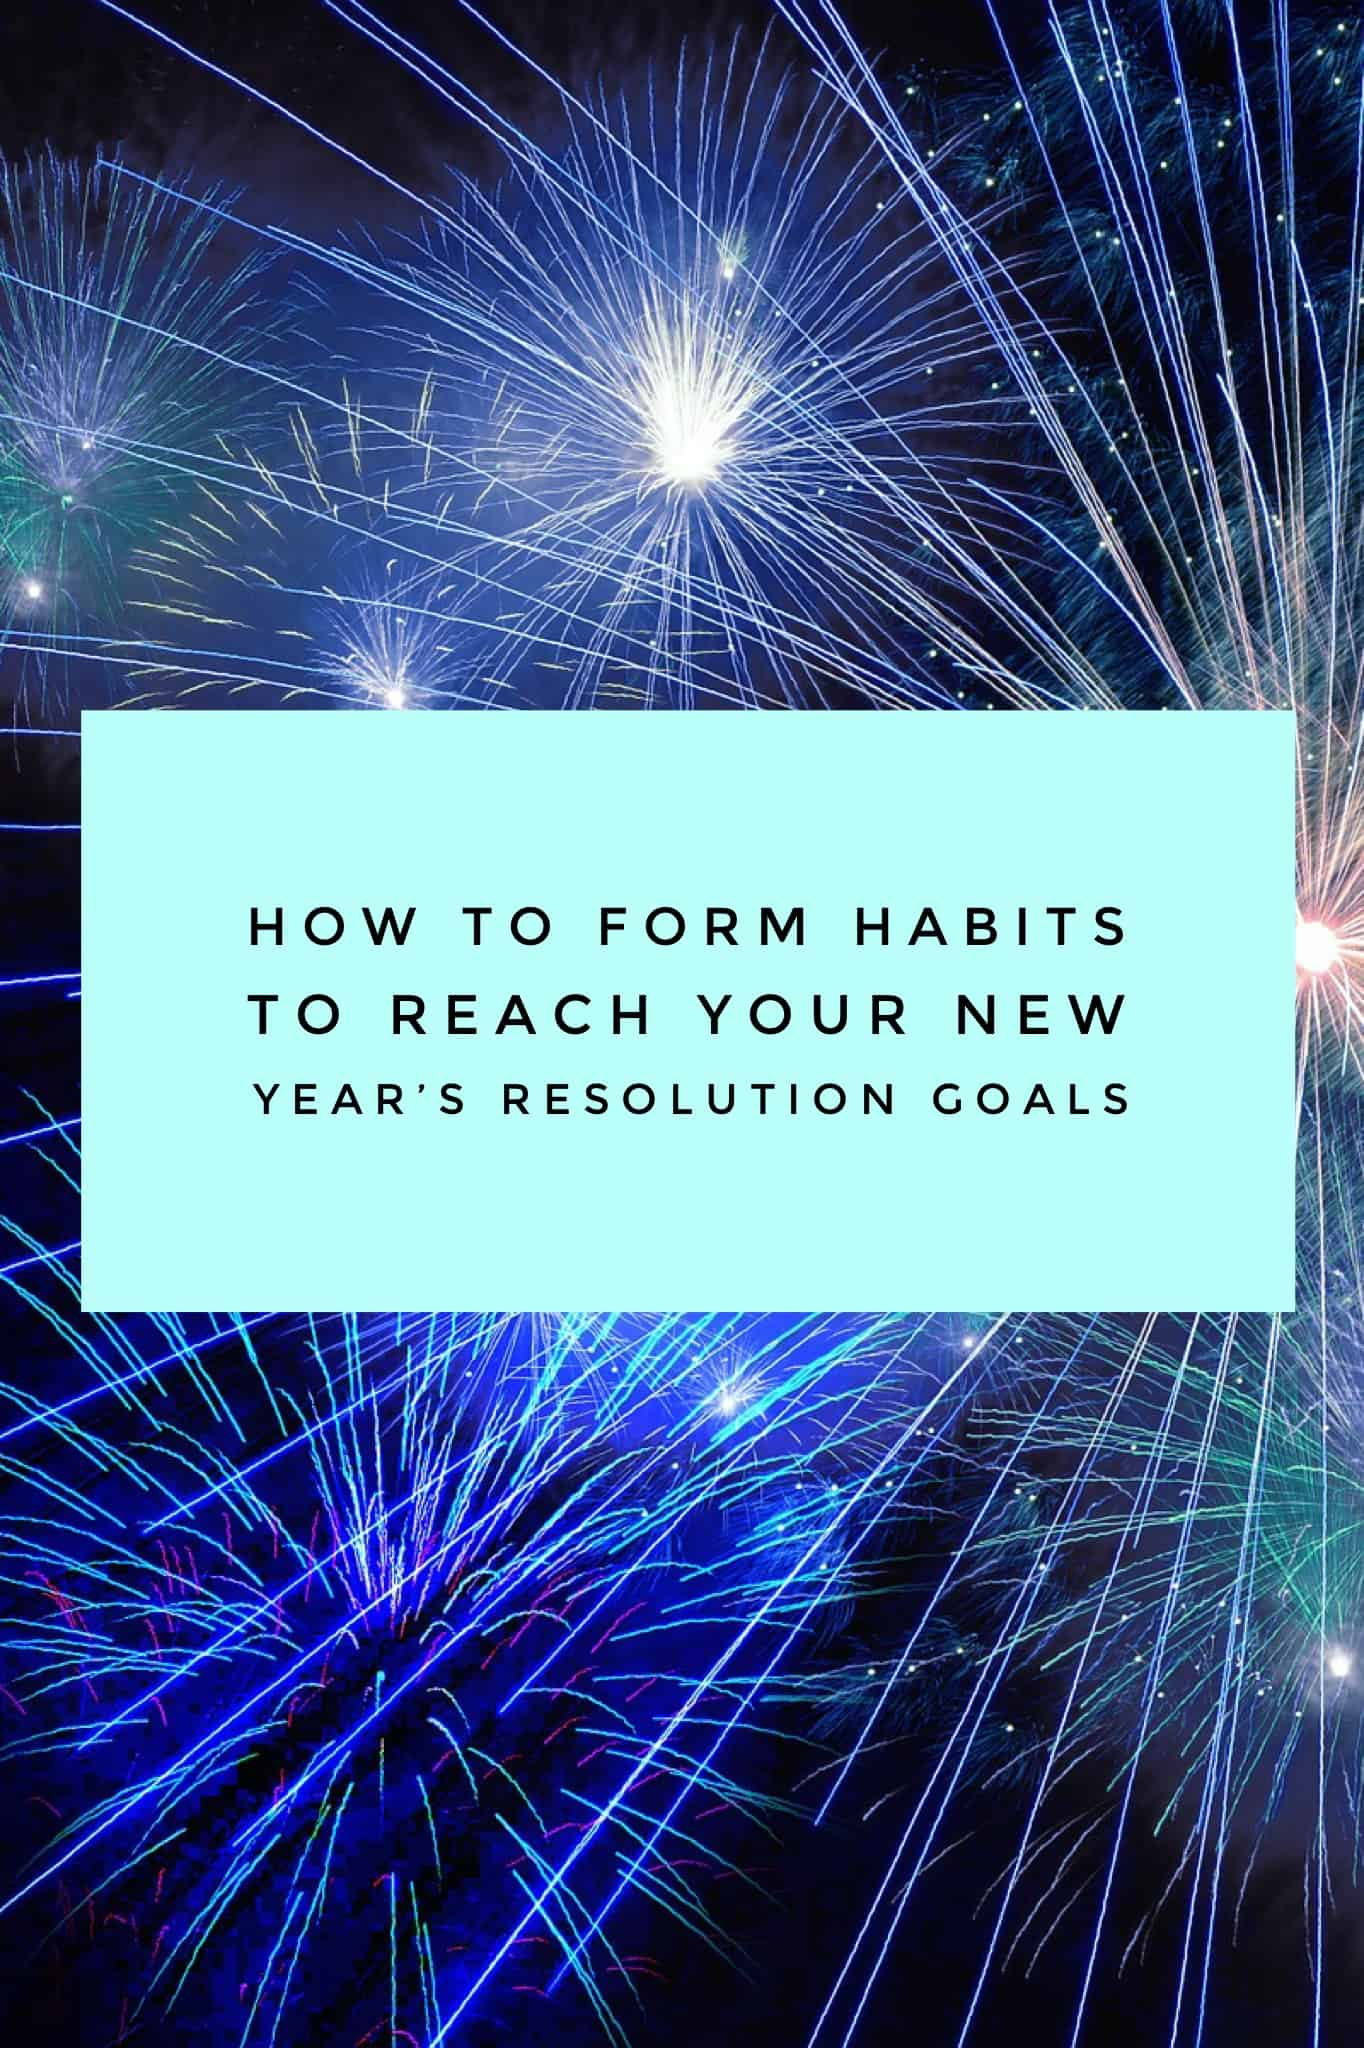 How to form habits to reach your new year's resolution goals title image